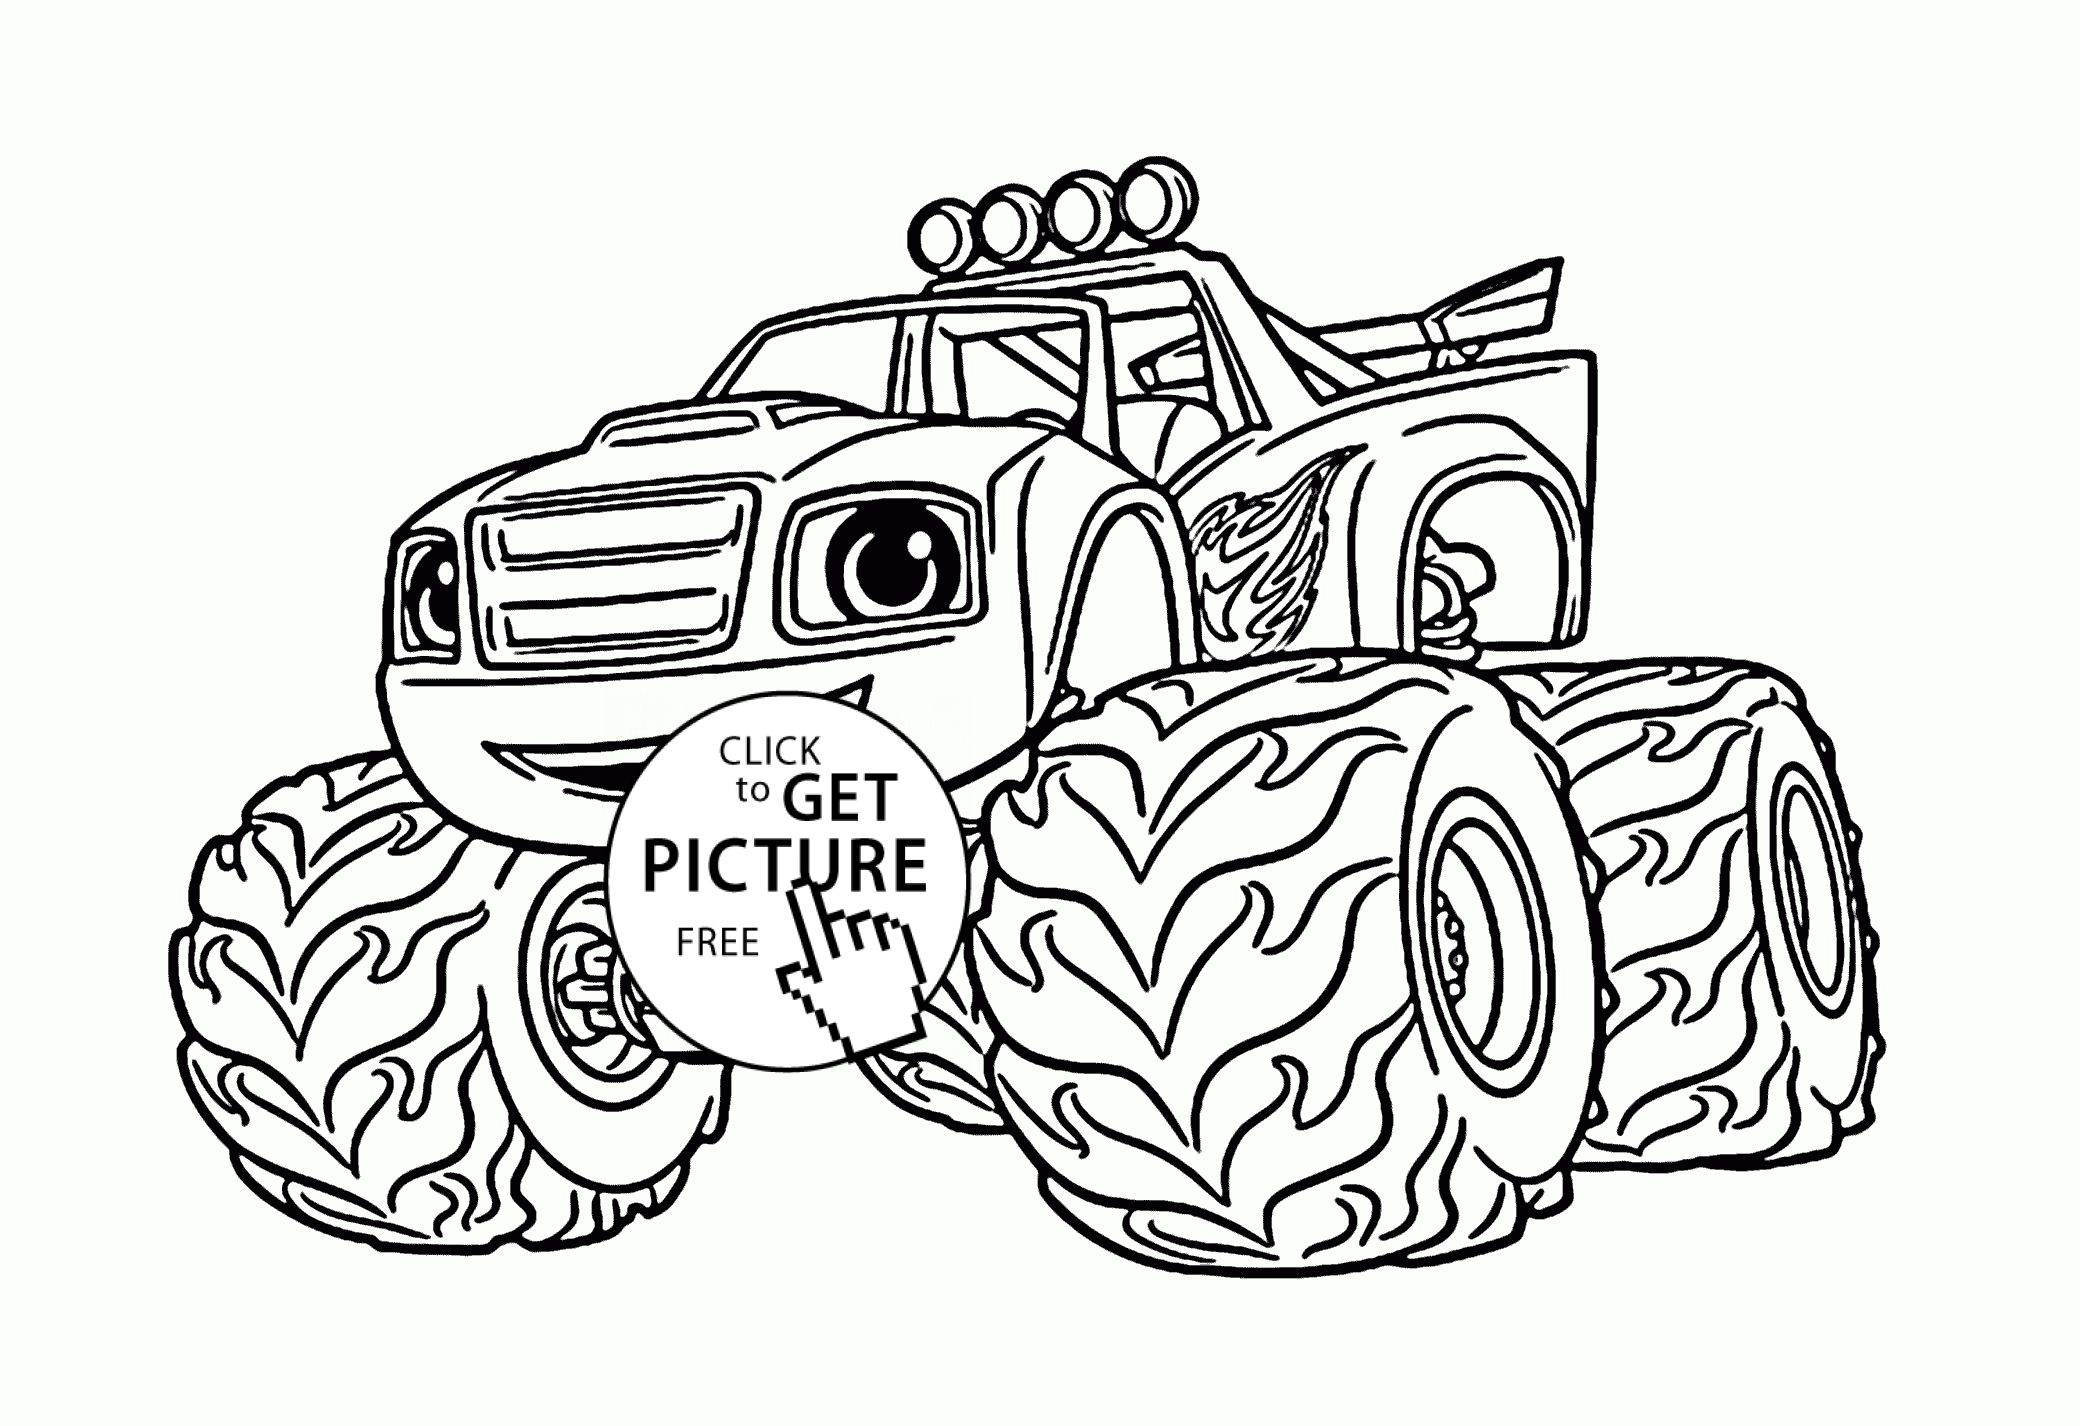 Bigfoot Coloring Pages To Print Monster Truck Coloring Pages Cartoon Coloring Pages Truck Coloring Pages